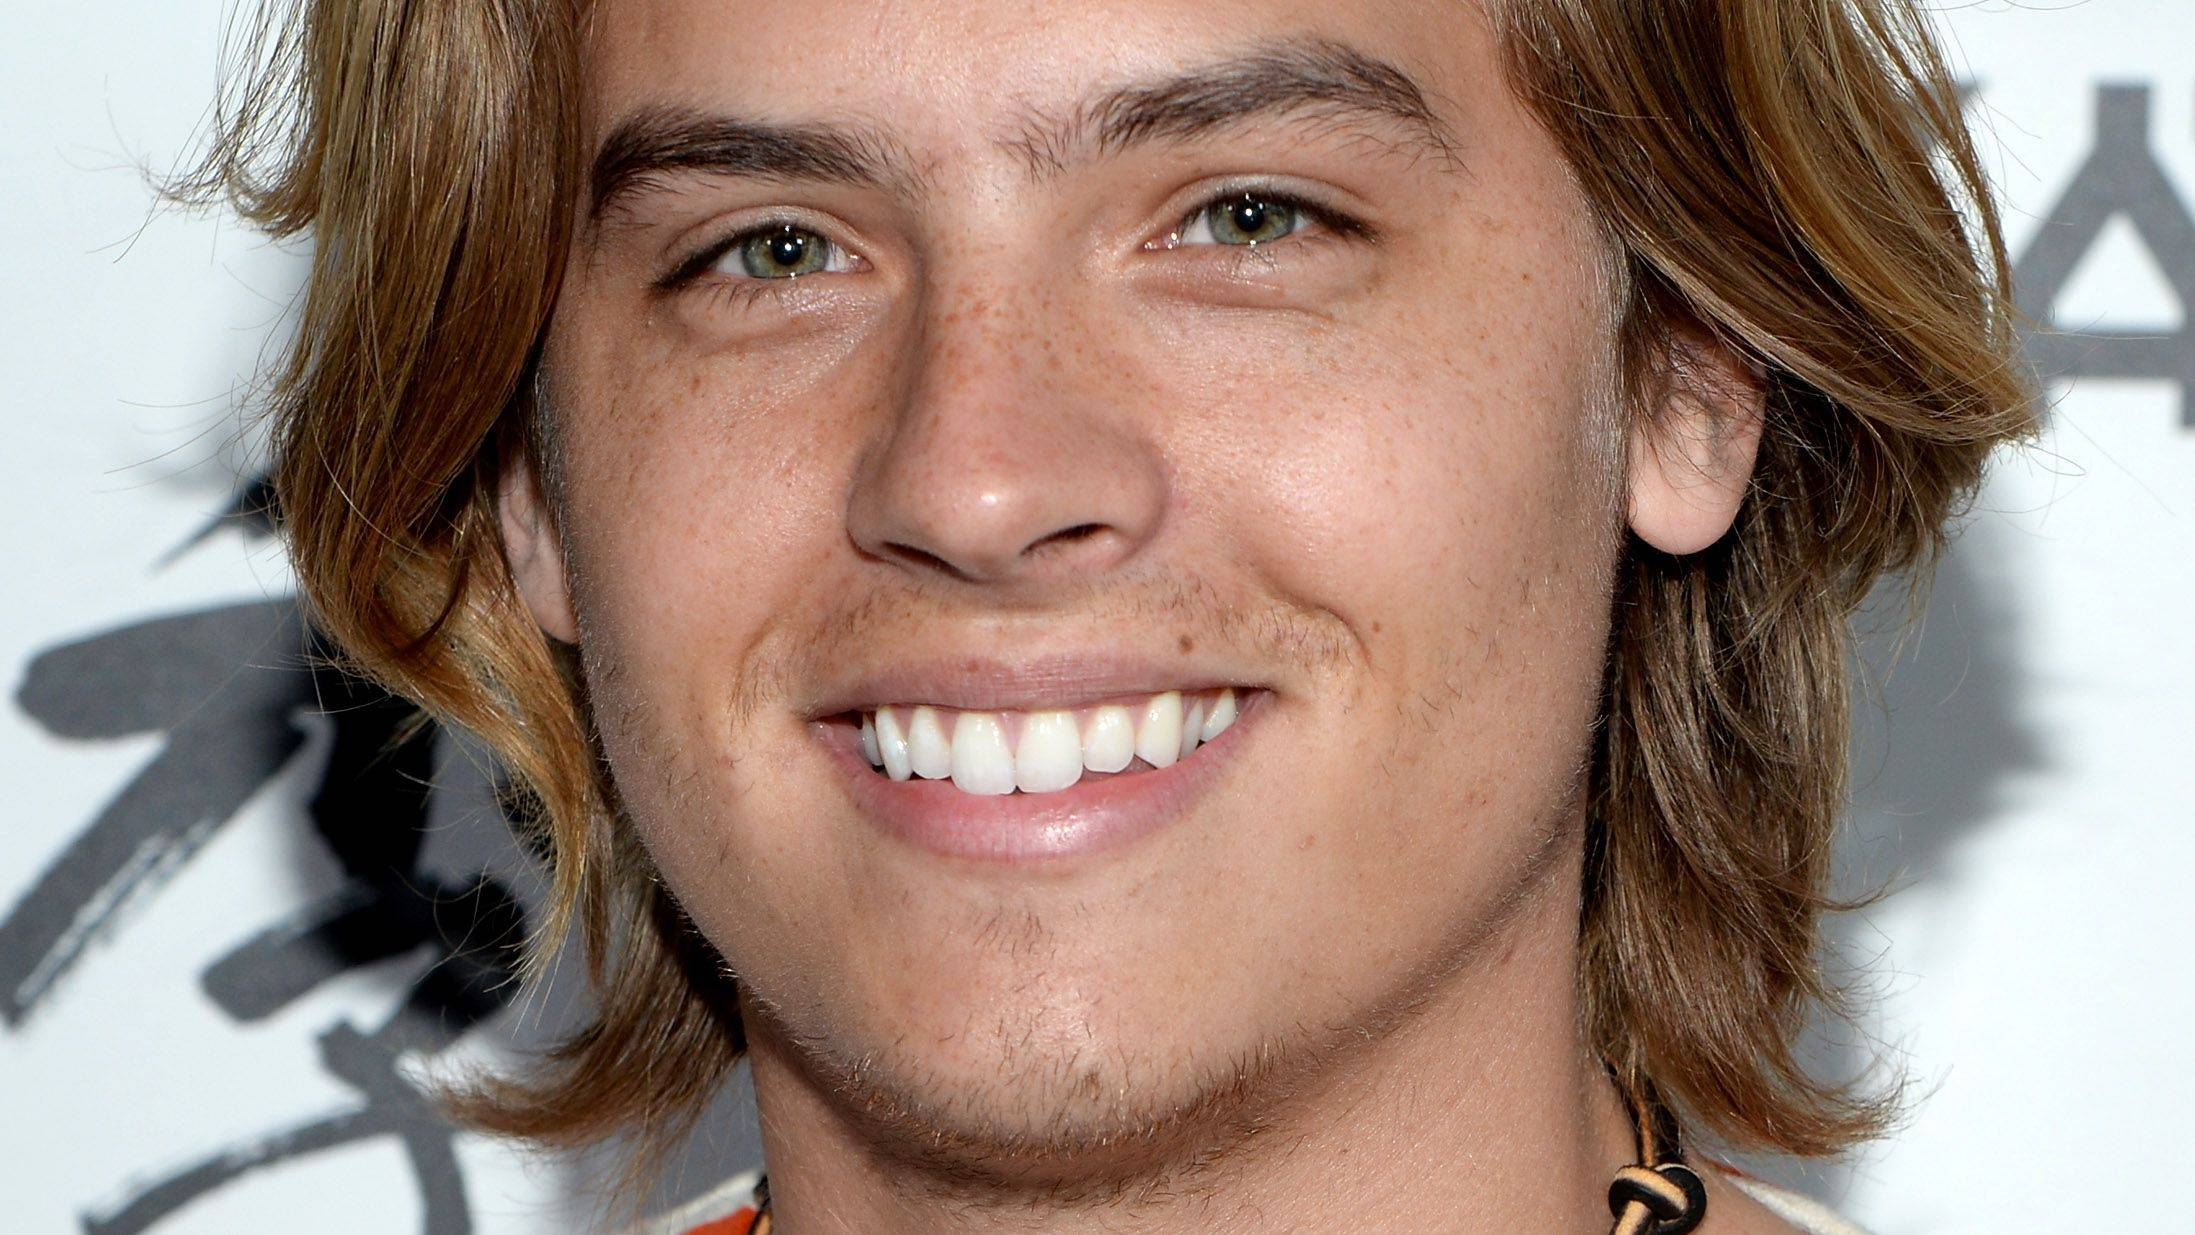 Dylan Sprouse Is The New King Of Long Hair Sorry Harry Styles Mtv